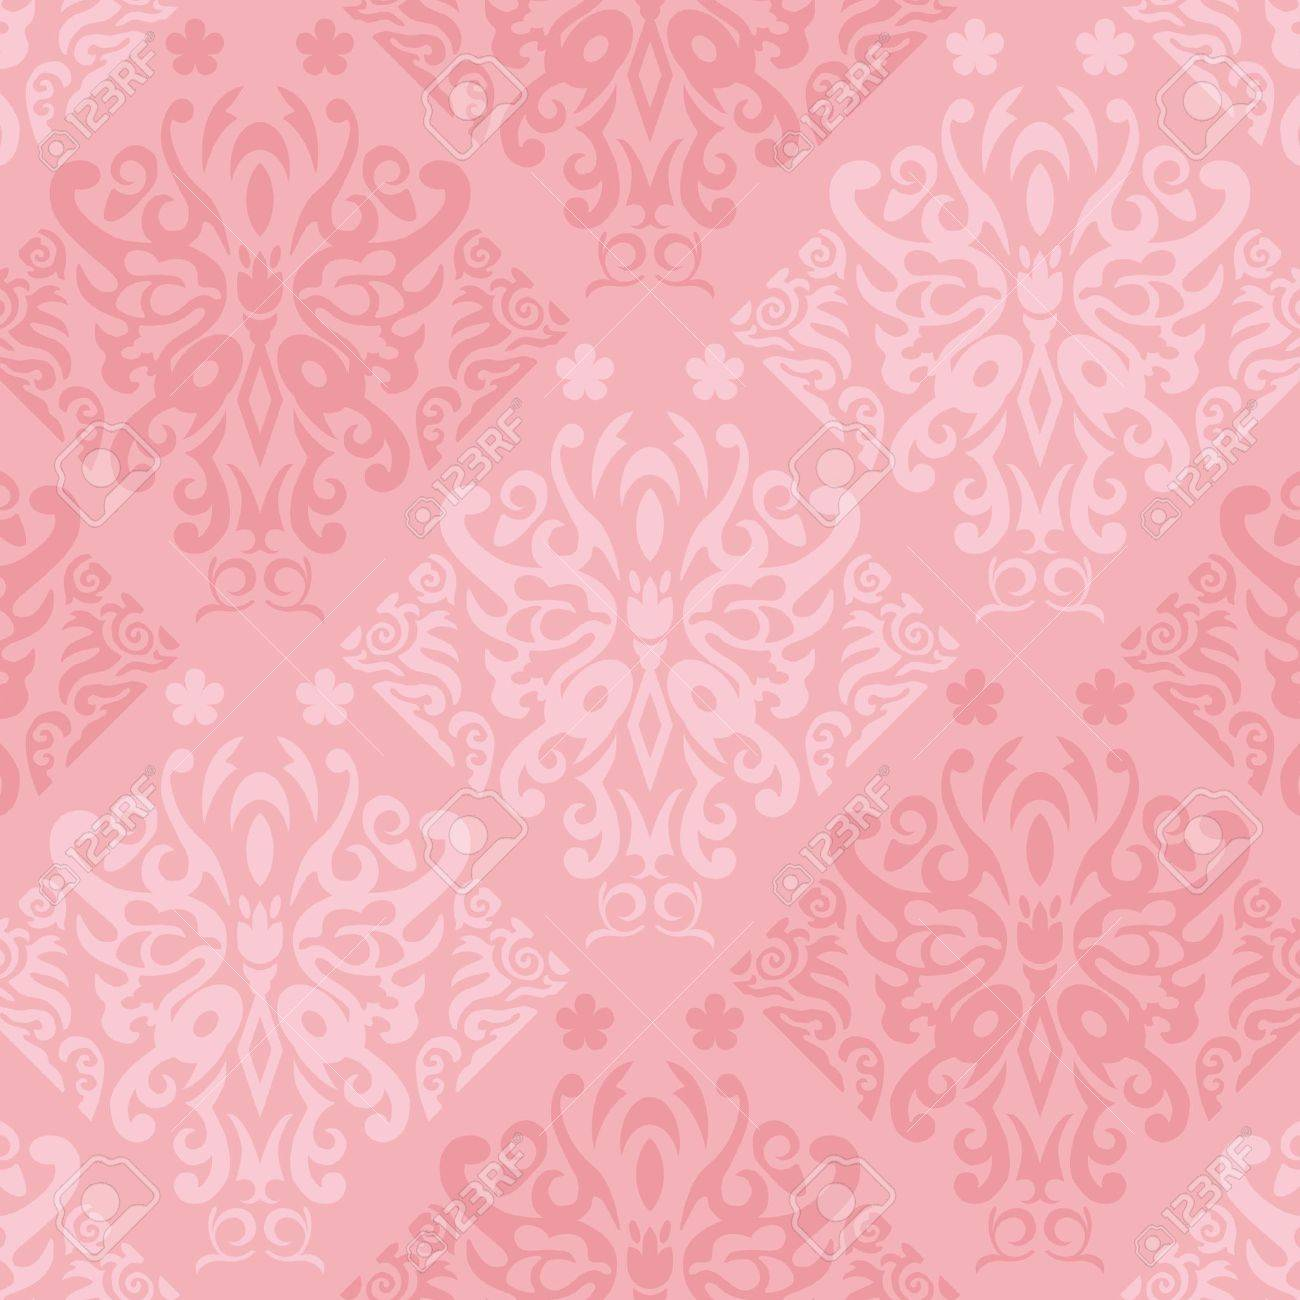 Seamless Pink Butterfly Wallpaper Vector